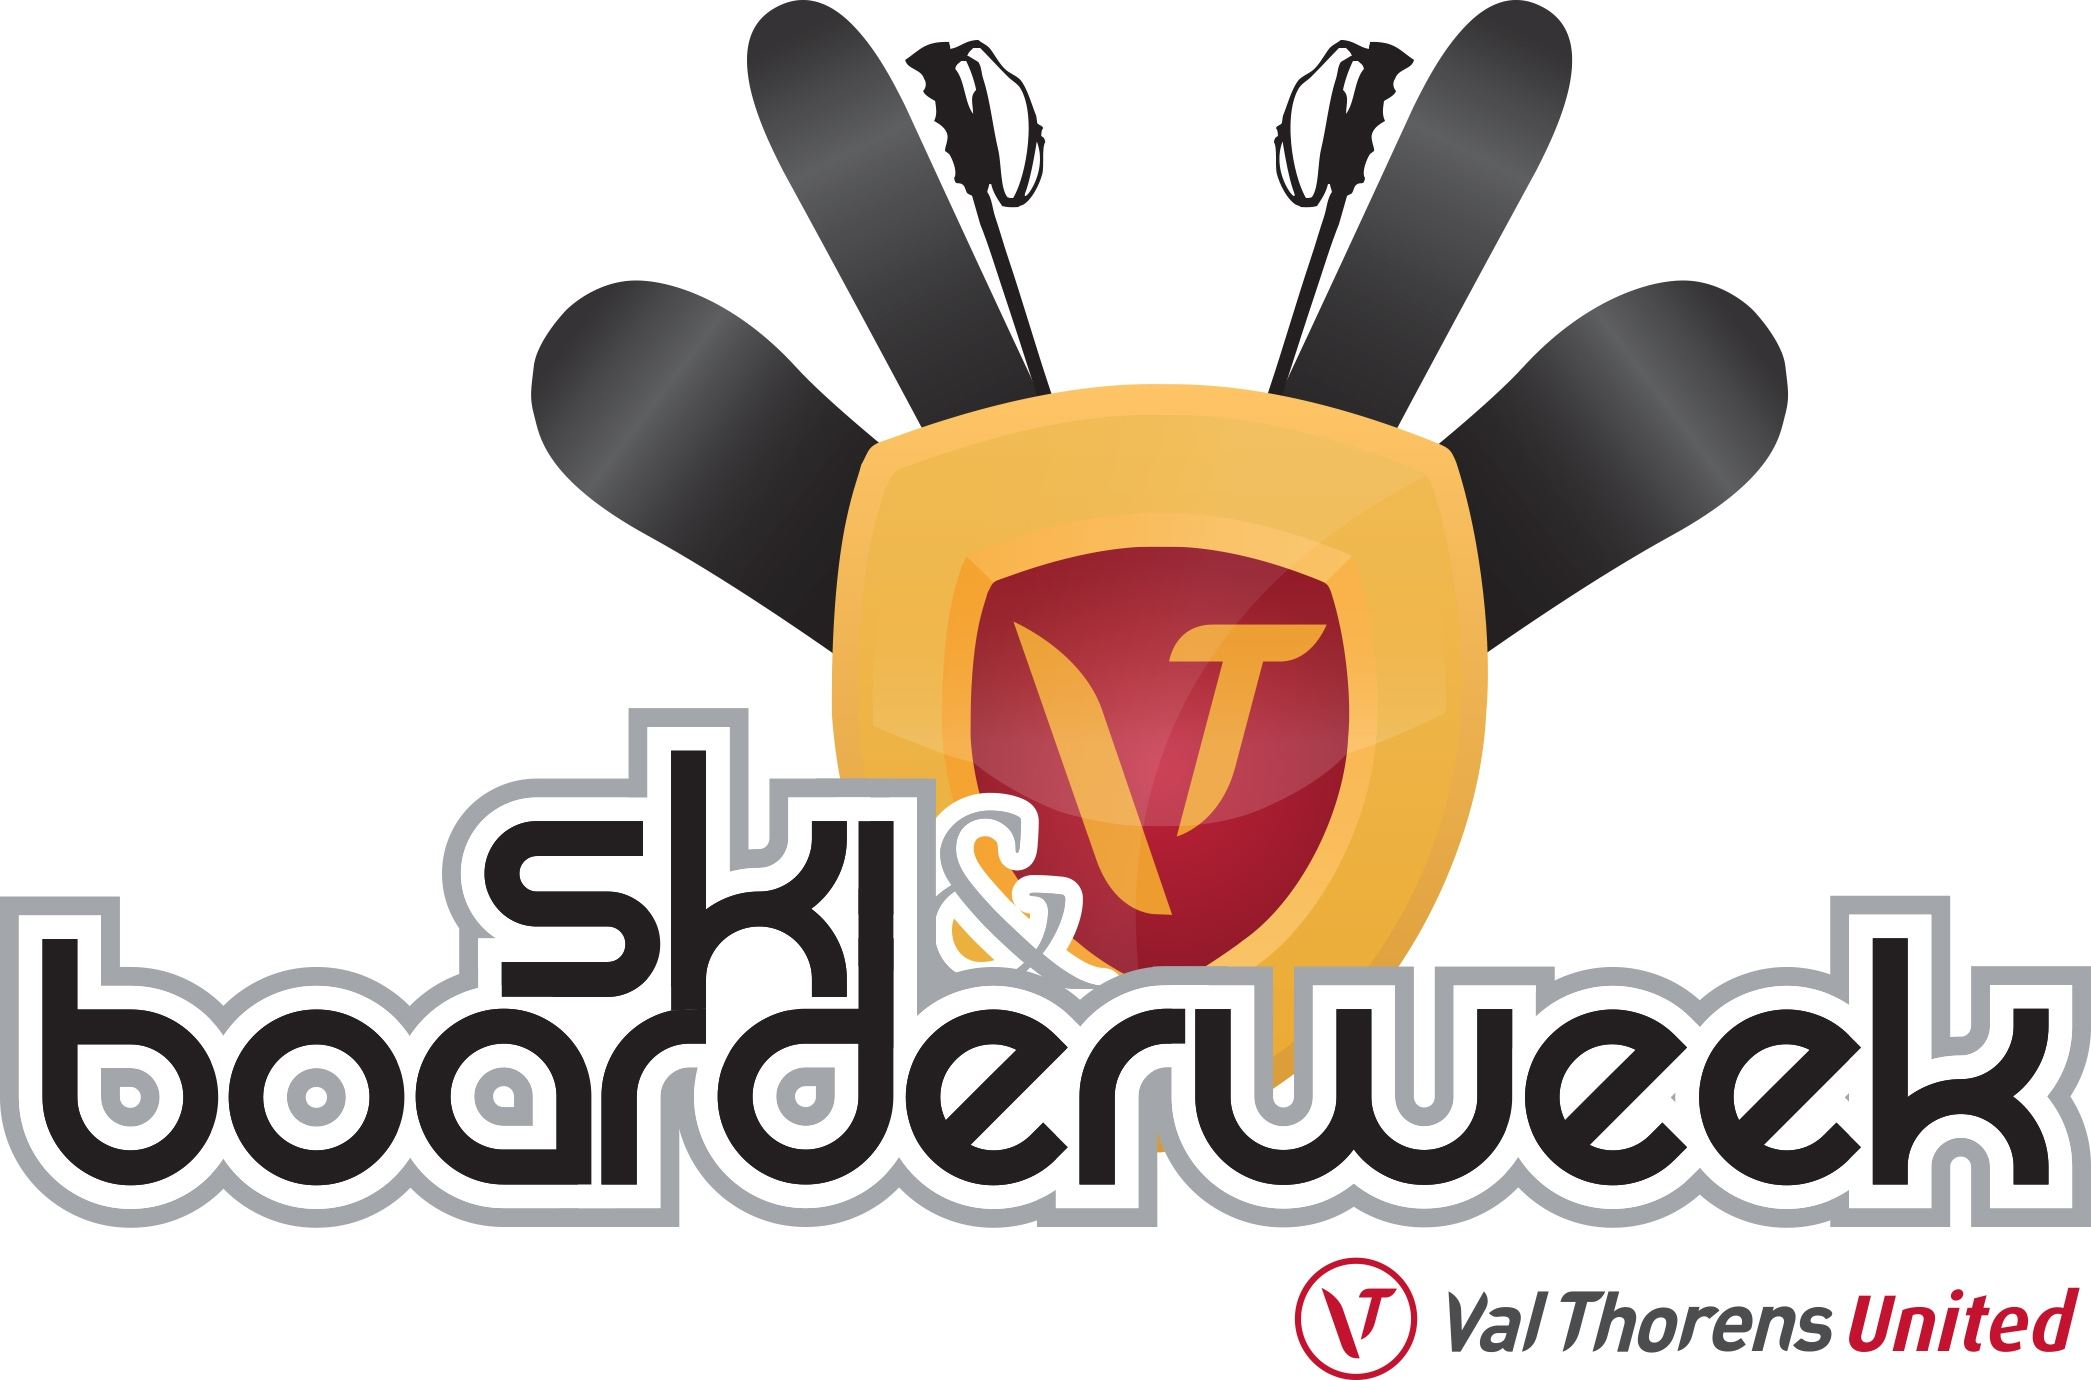 21st BOARDERWEEK - THE RIDERS' MEETING - FROM 16/12/17 TO 23/12/17 - FROM 296€ / PERS*